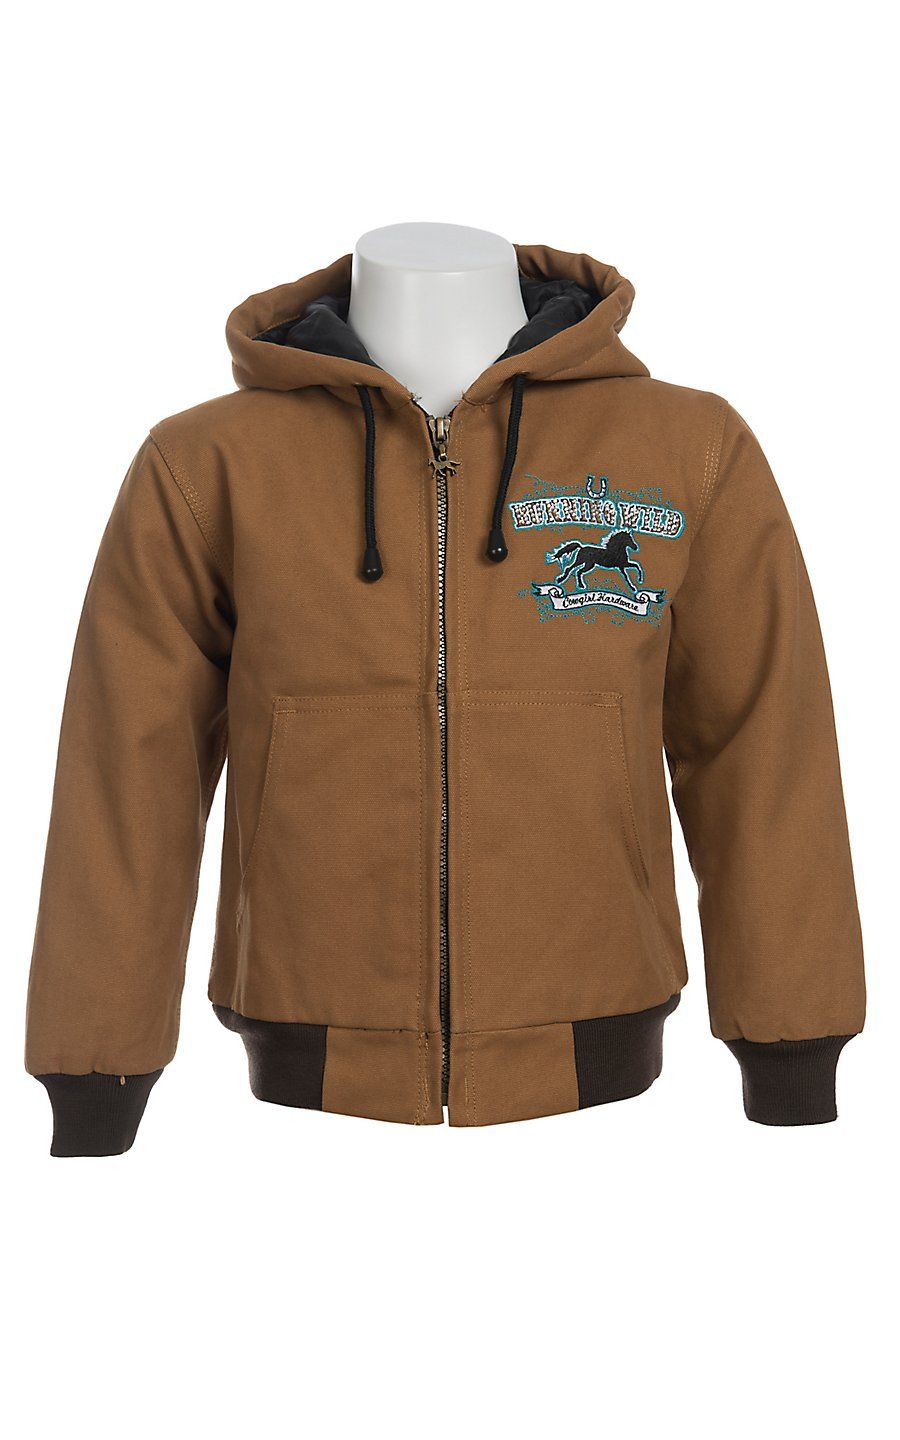 Cowgirl Hardware Girl S Tan Running Wild Logo Crystal Canvas Jacket Childrens Outerwear Outerwear Jackets Childrens Clothes [ 1440 x 900 Pixel ]